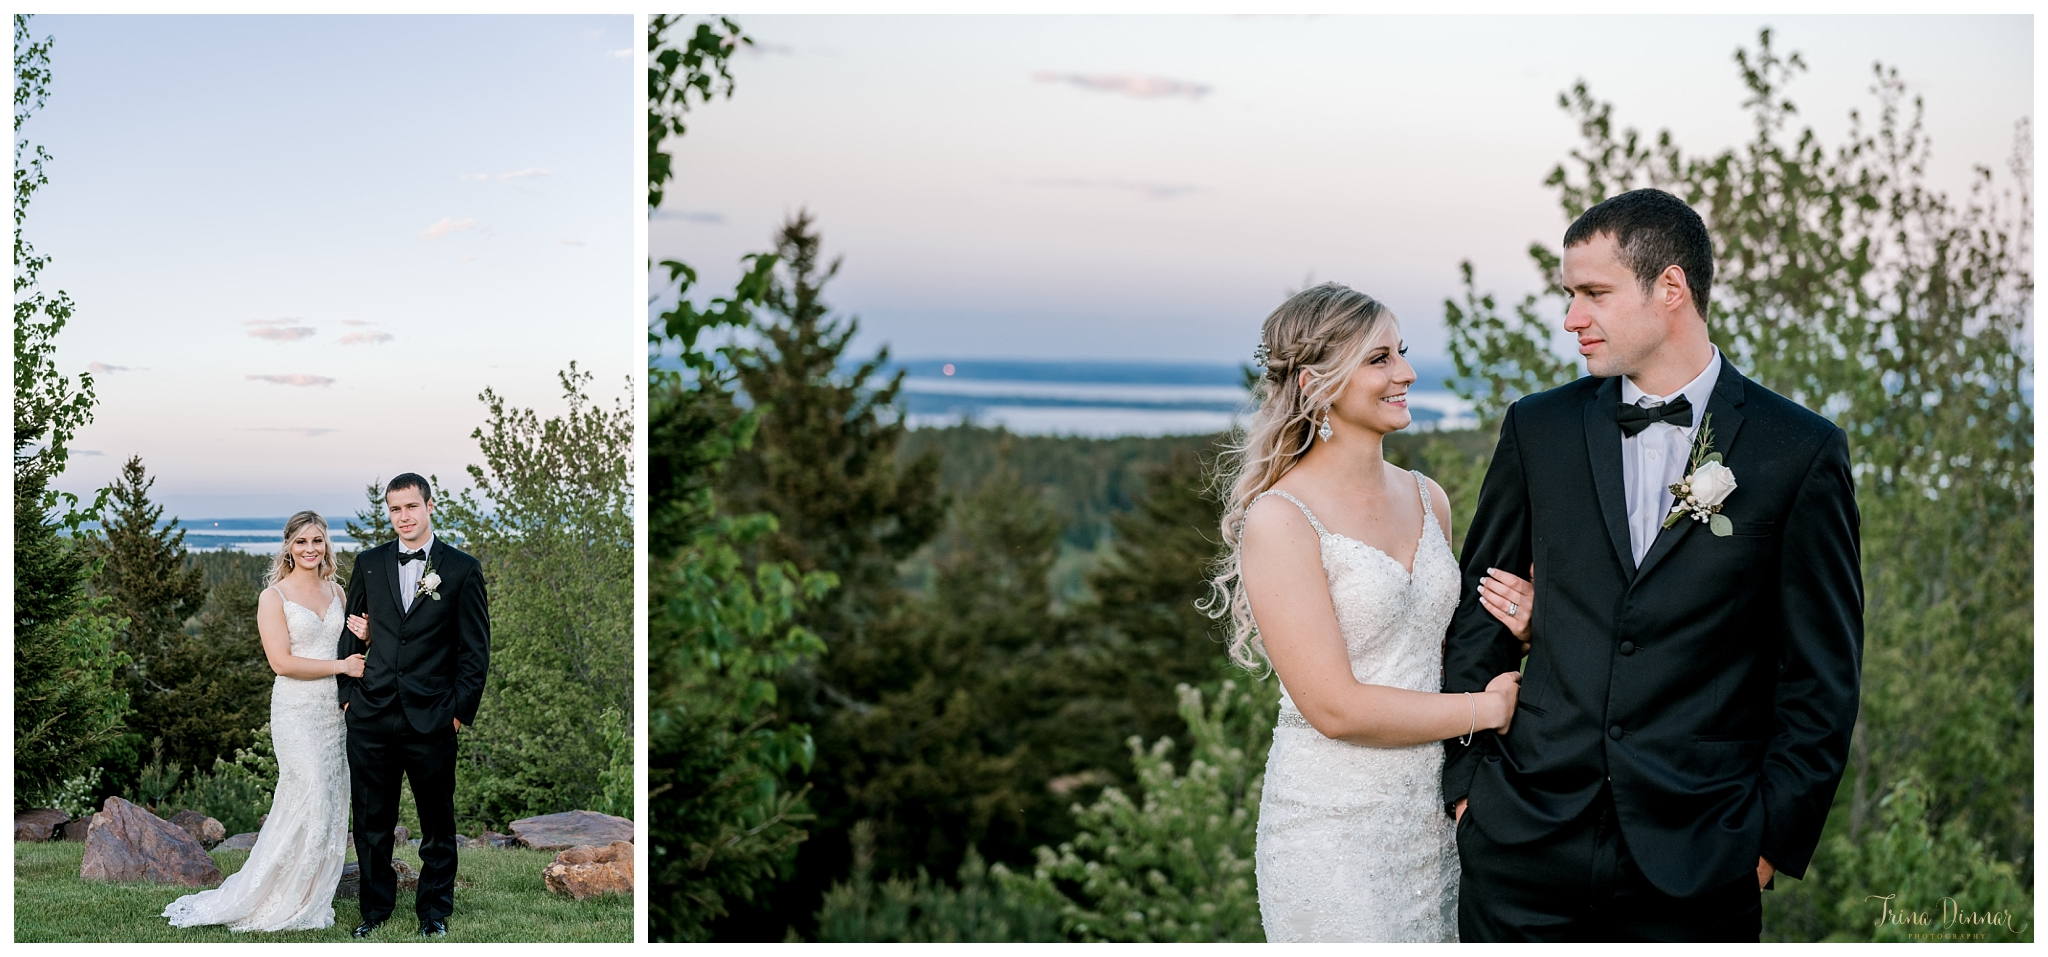 Bride and Groom Wedding Portraits in Midcoast Maine